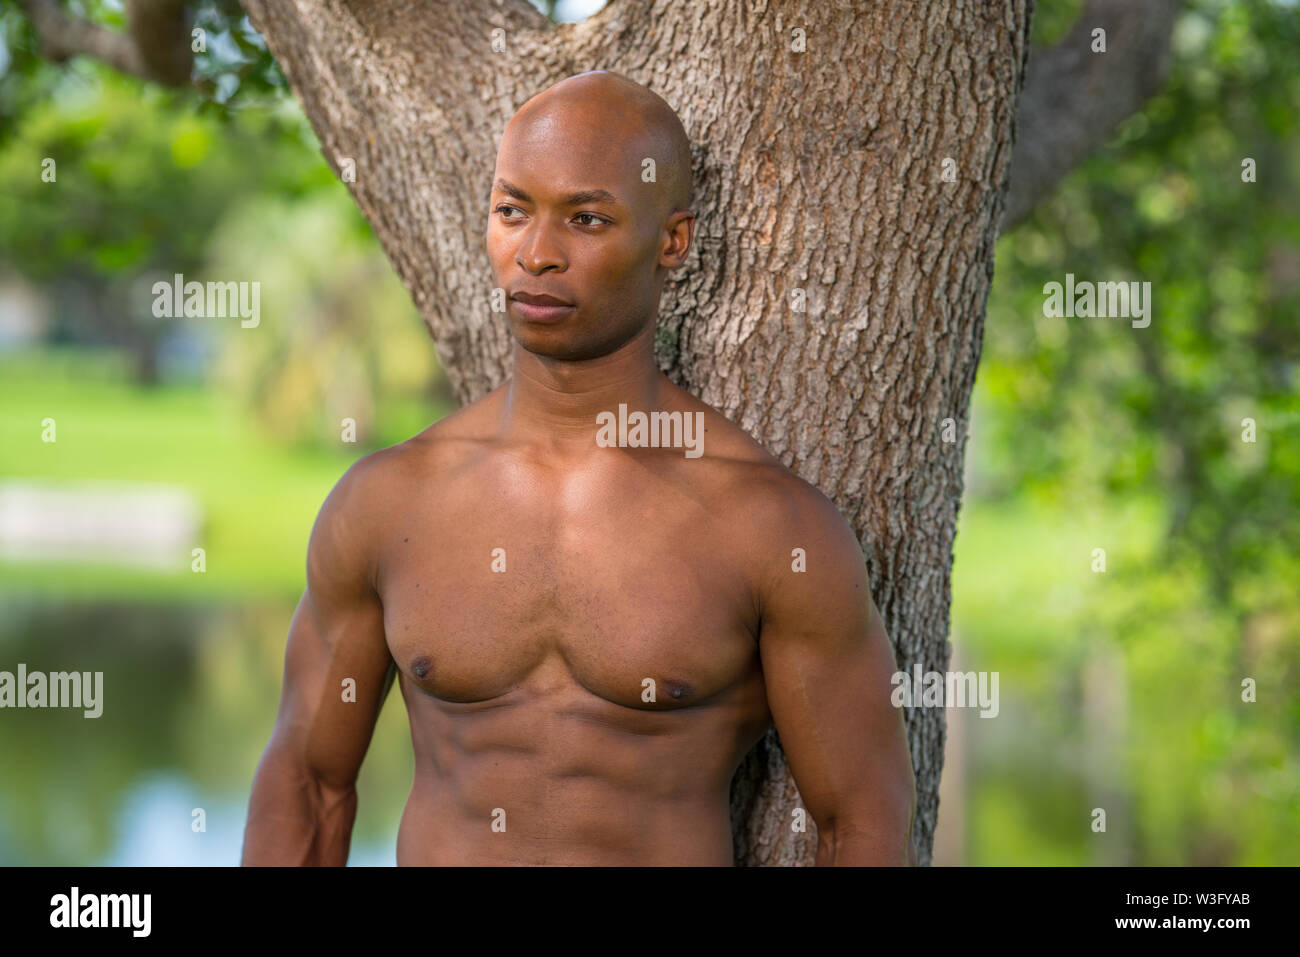 Portrait of a shirtless fitness model posing by a tree in the park. Image lit with off camera flash and natural light - Stock Image